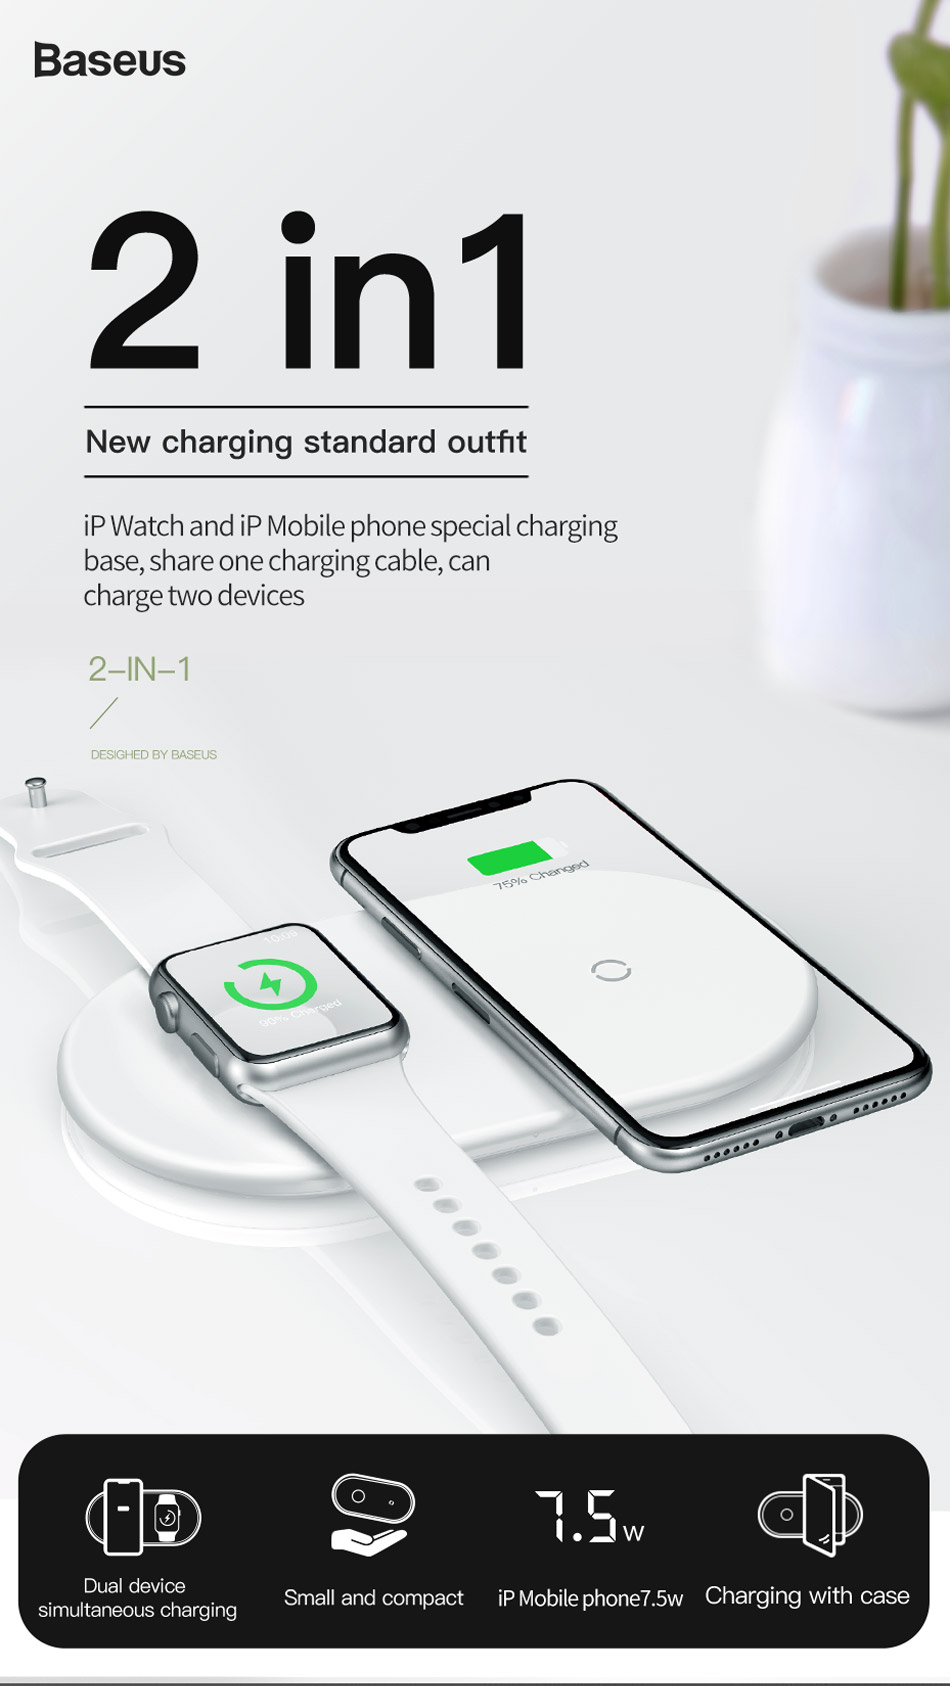 Baseus Smart 2in1 Wireless Charger White 3.jpg